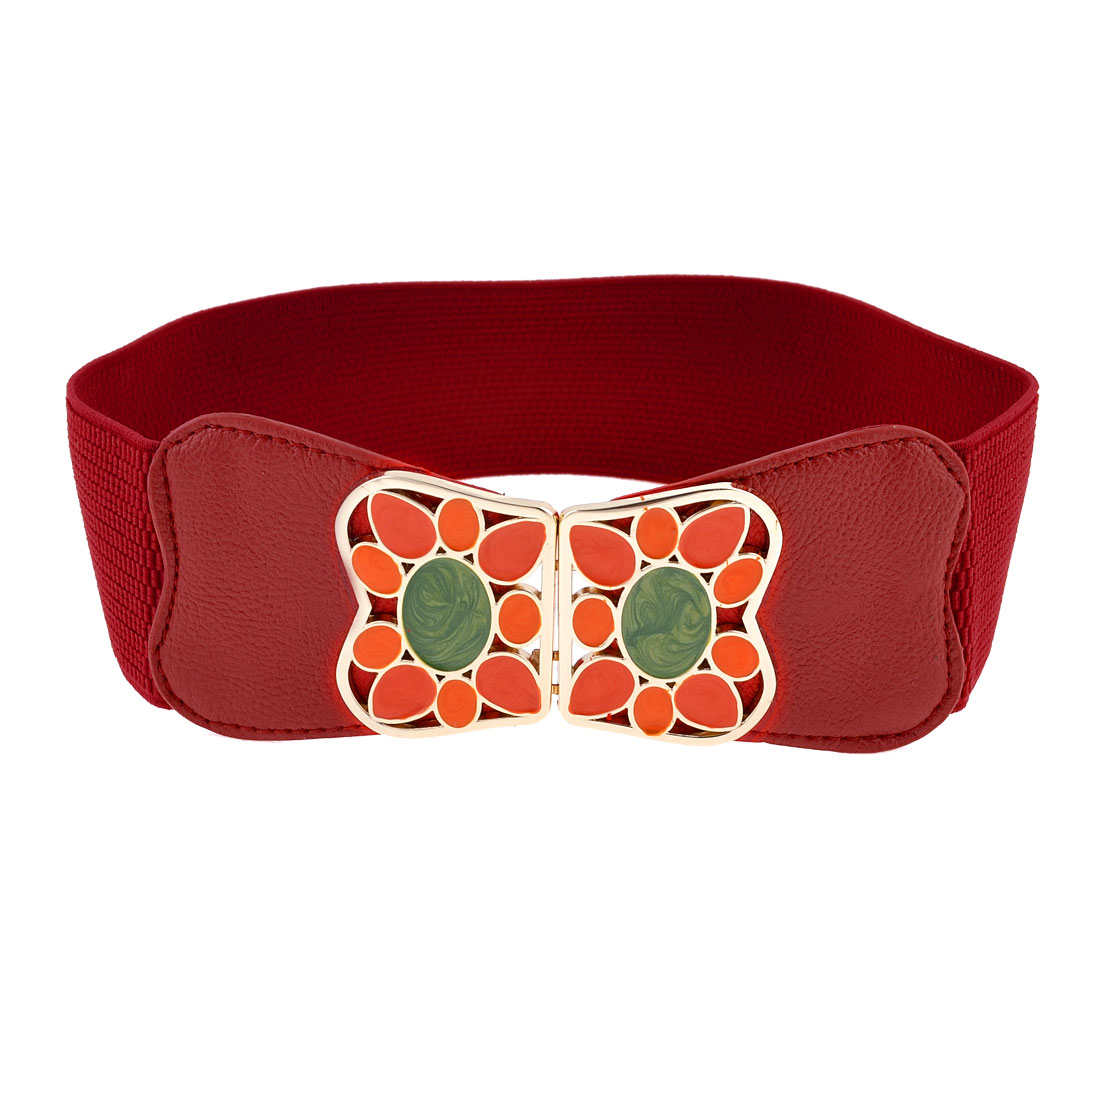 Colored Painted Metel Interlocking Buckle 6cm Width Elastic Waistband Red